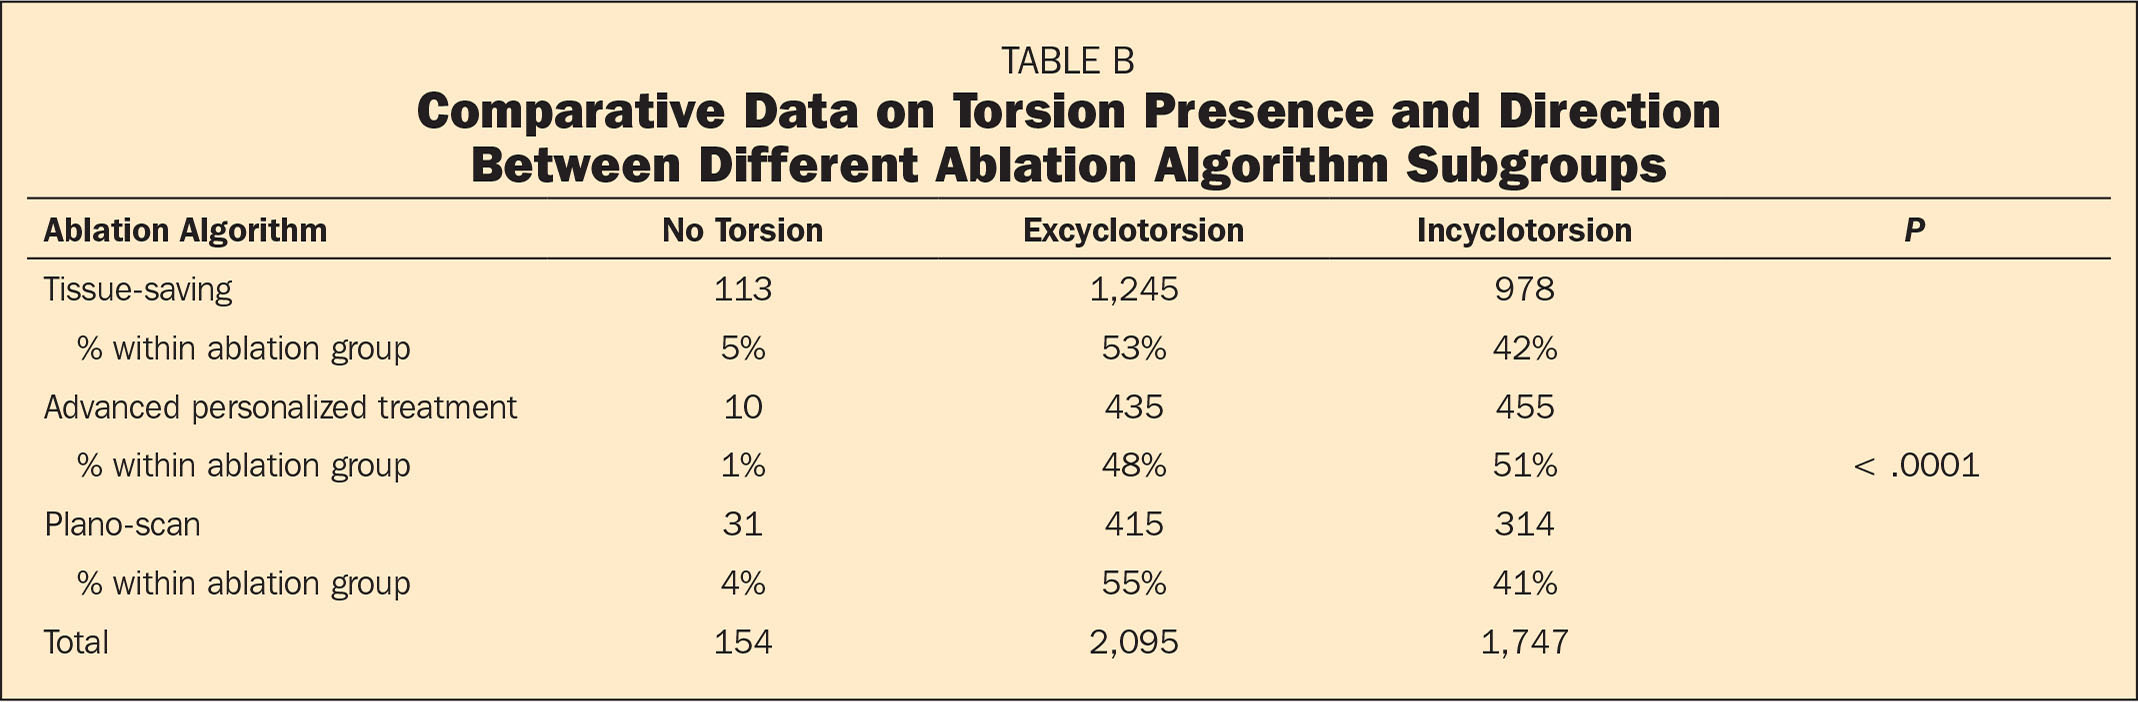 Comparative Data on Torsion Presence and Direction Between Different Ablation Algorithm Subgroups